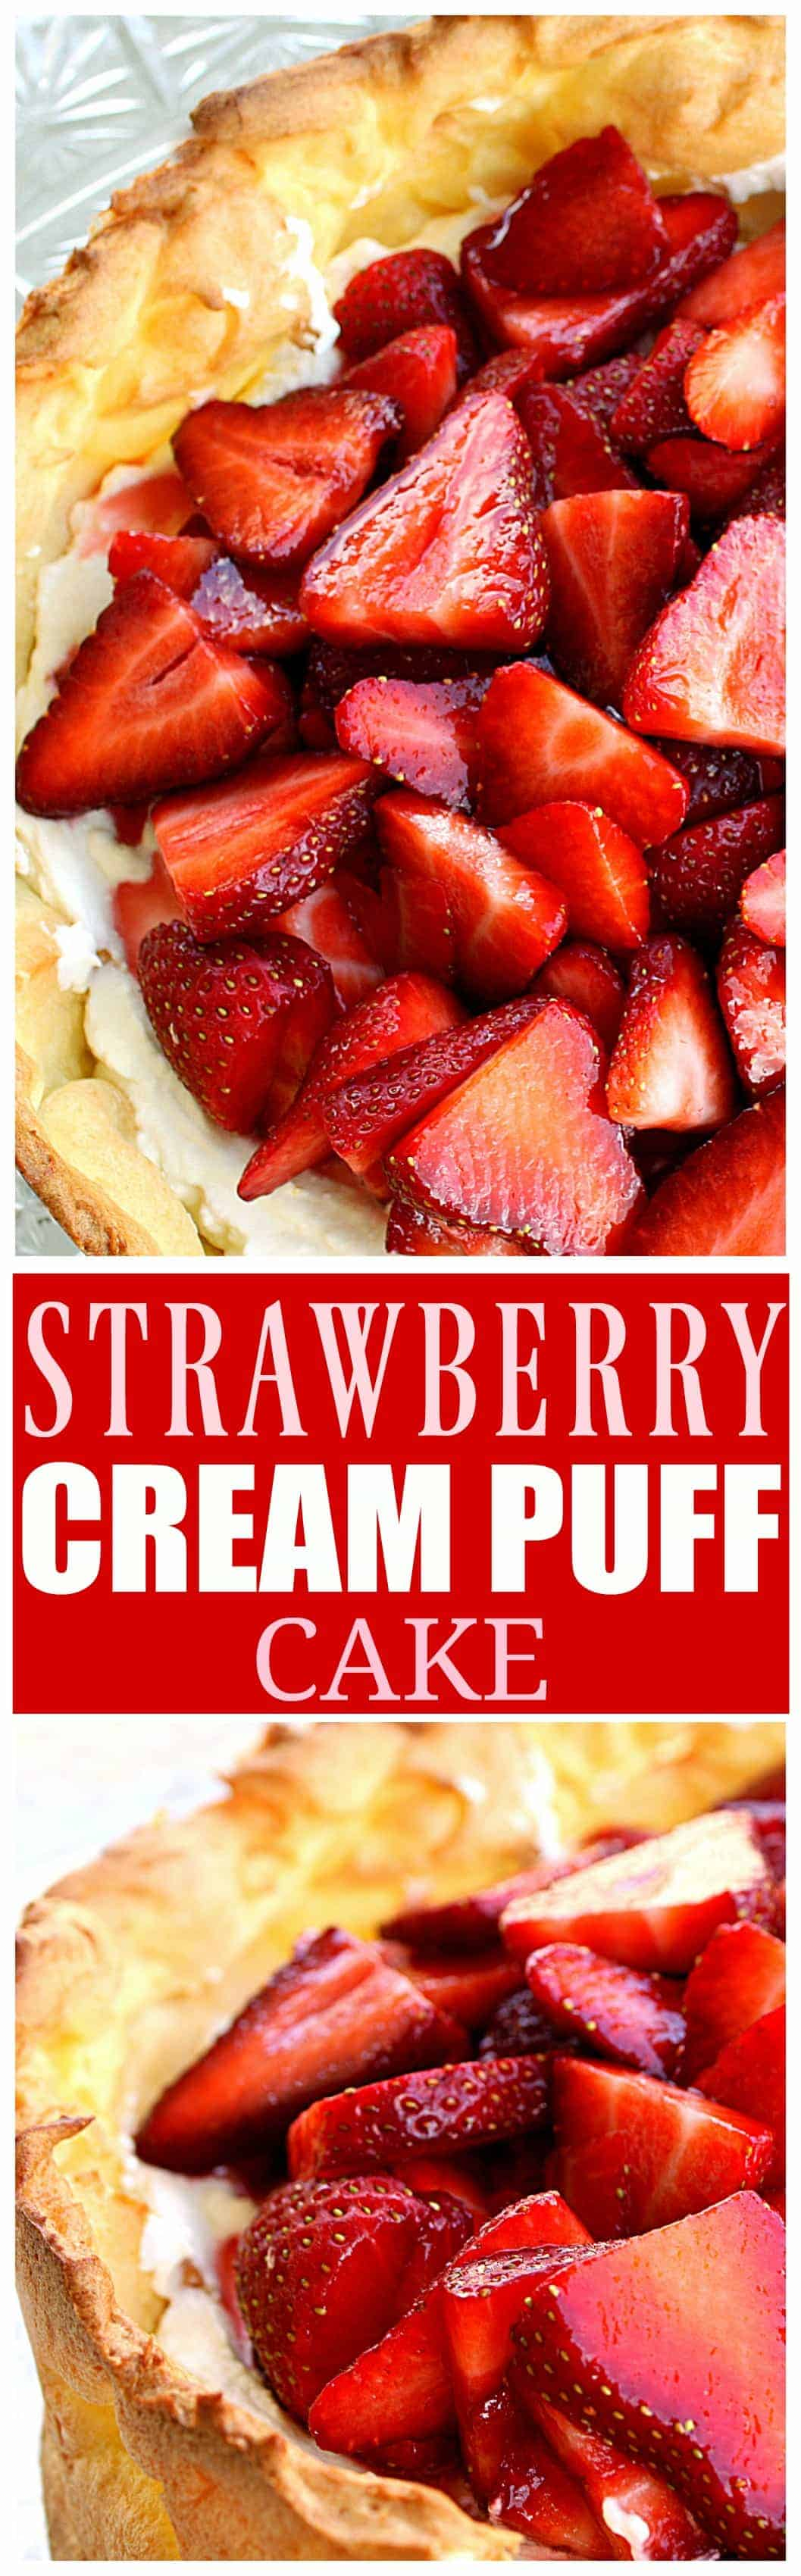 Strawberry Cream Puff Cake- the-girl-who-ate-everything.com